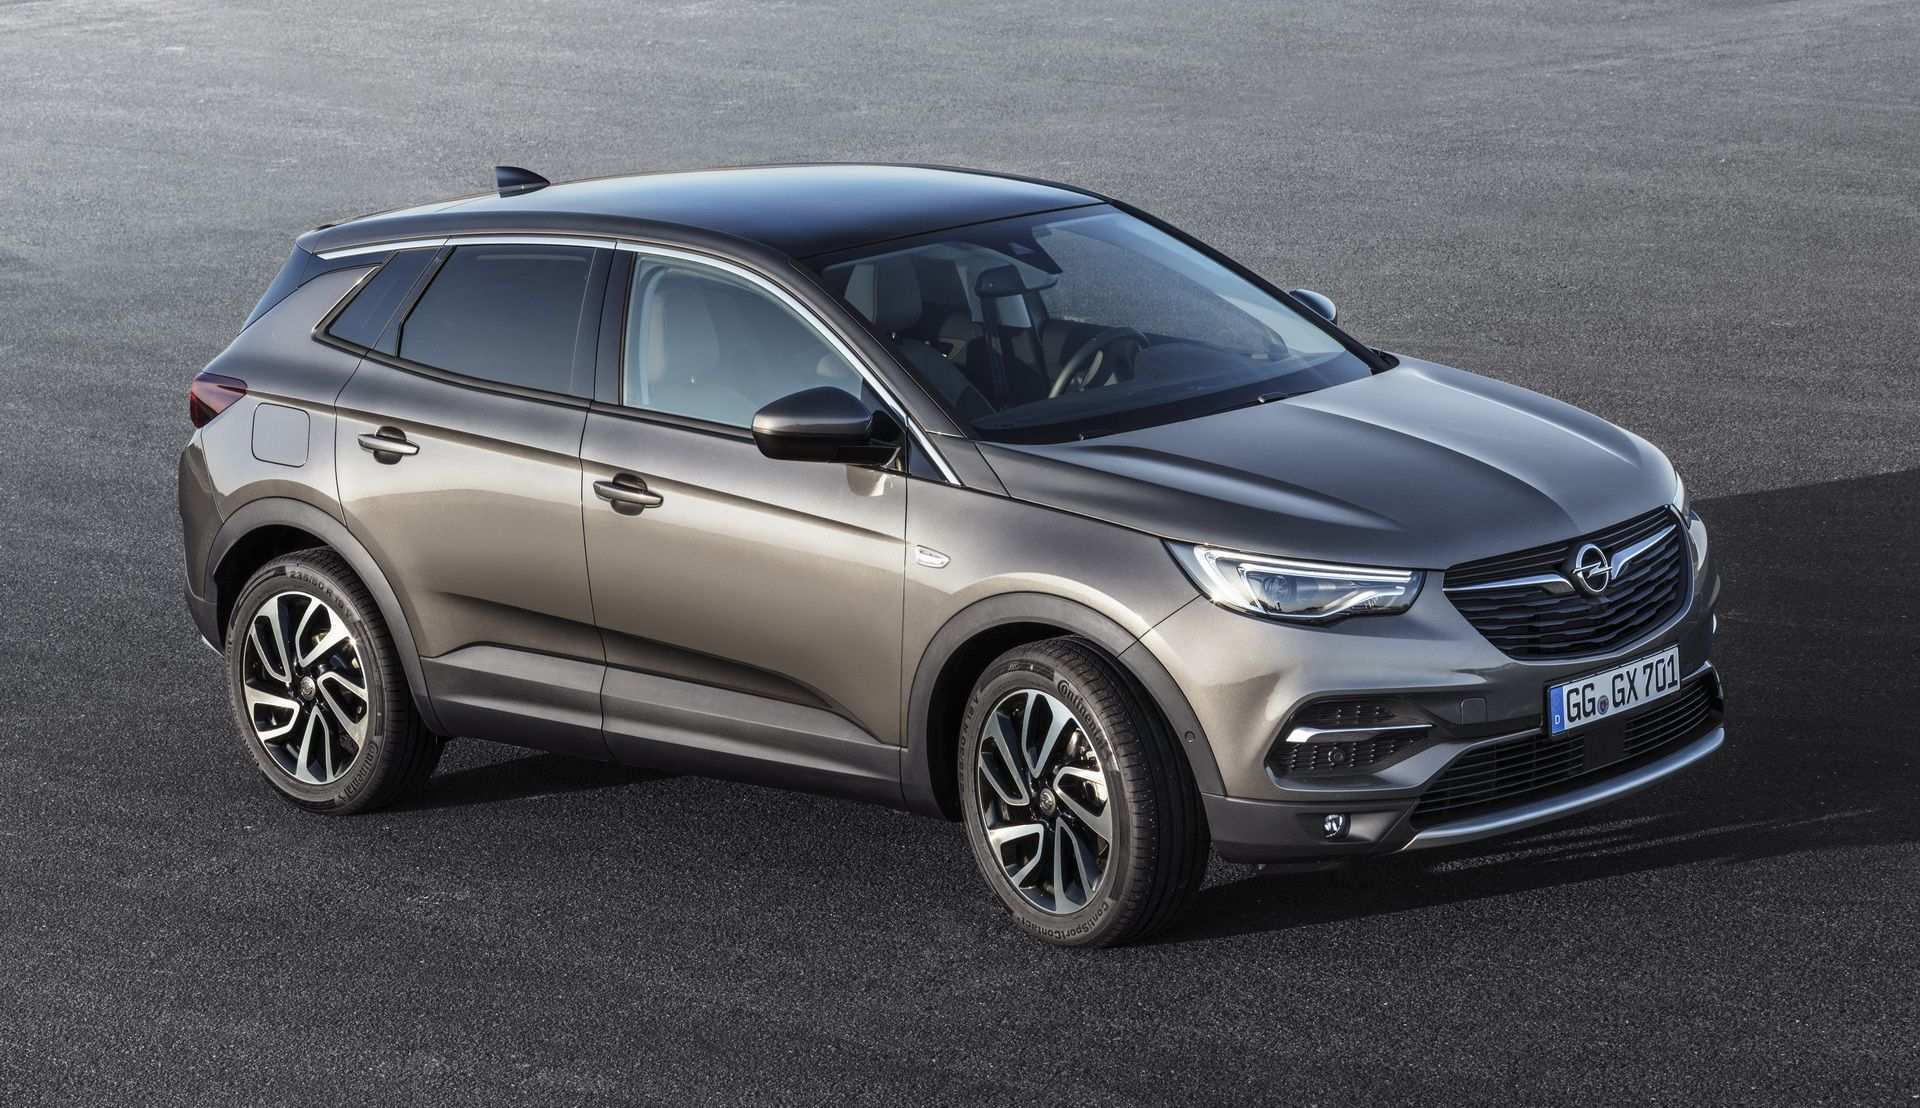 94 Best Review Opel Modelle 2020 Images by Opel Modelle 2020